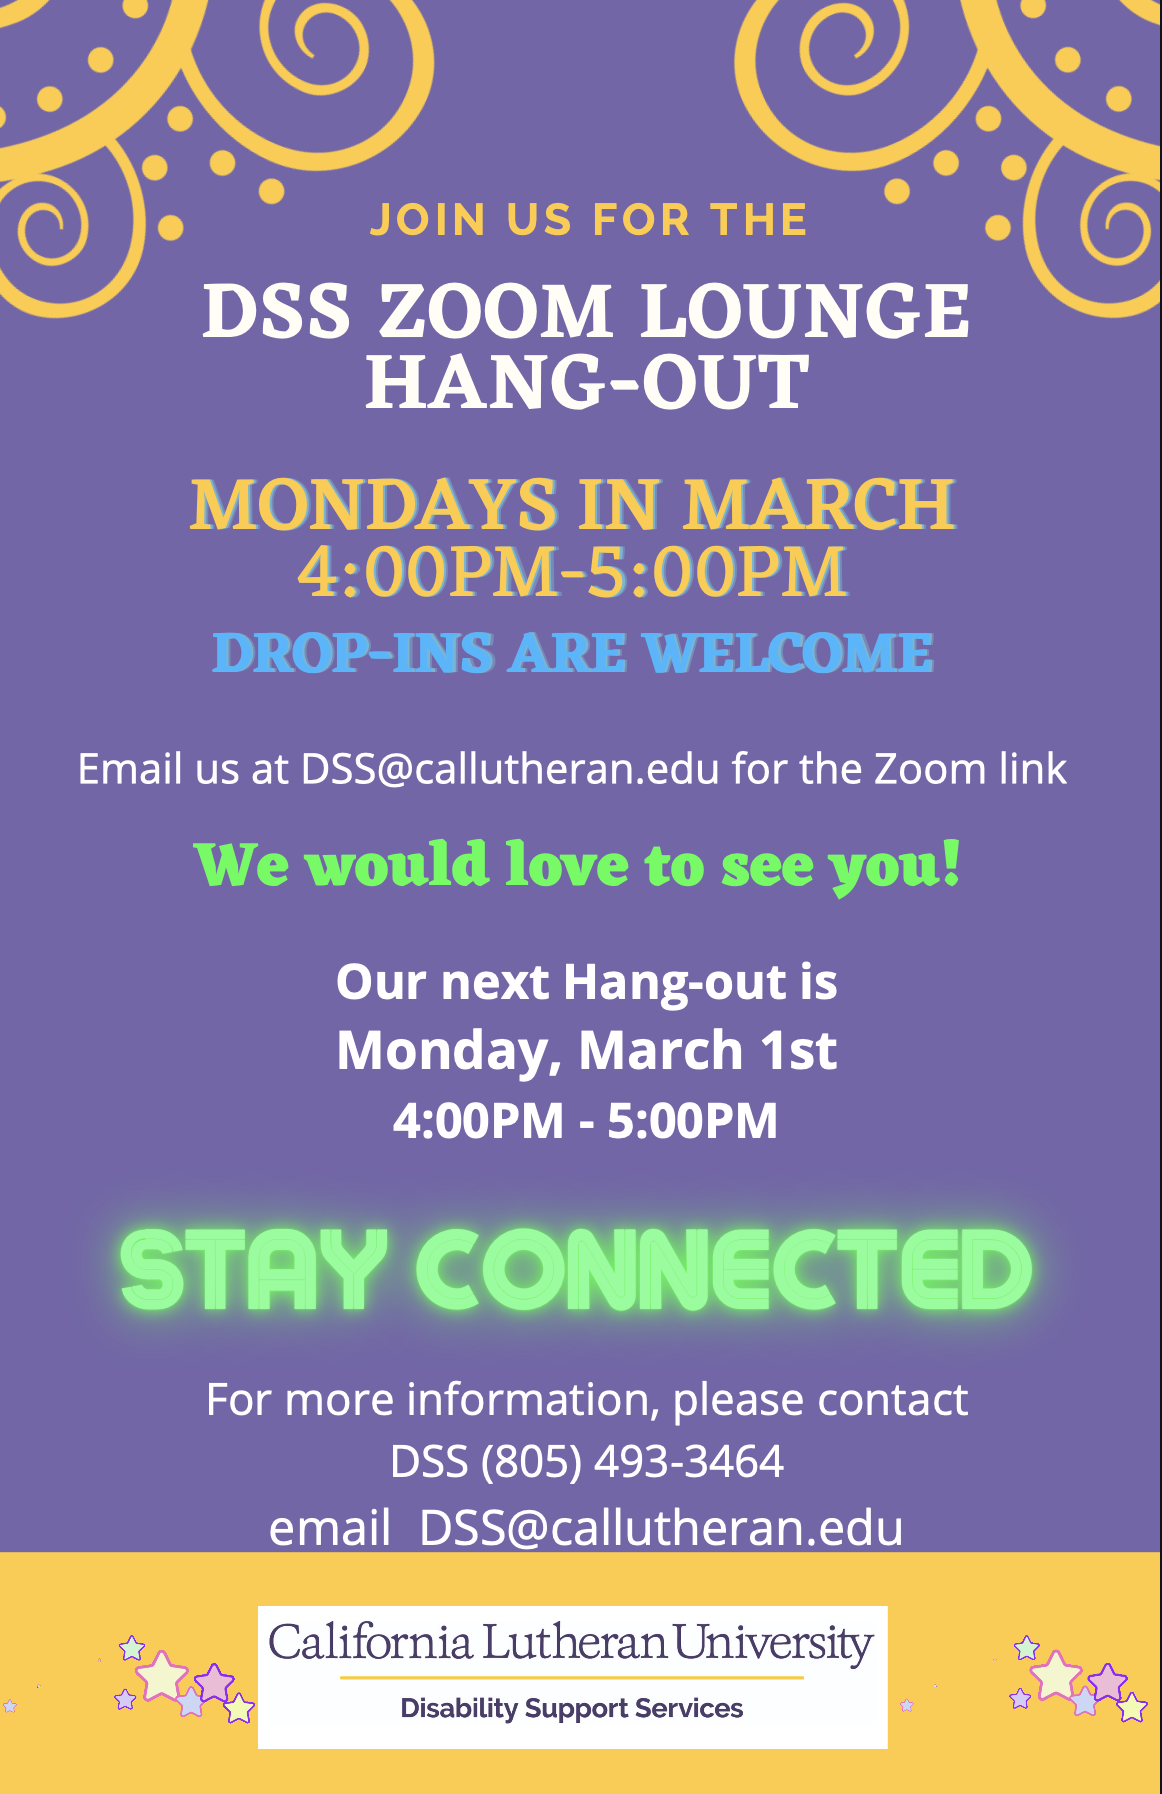 Zoom Lounge Hang-Out Flyer